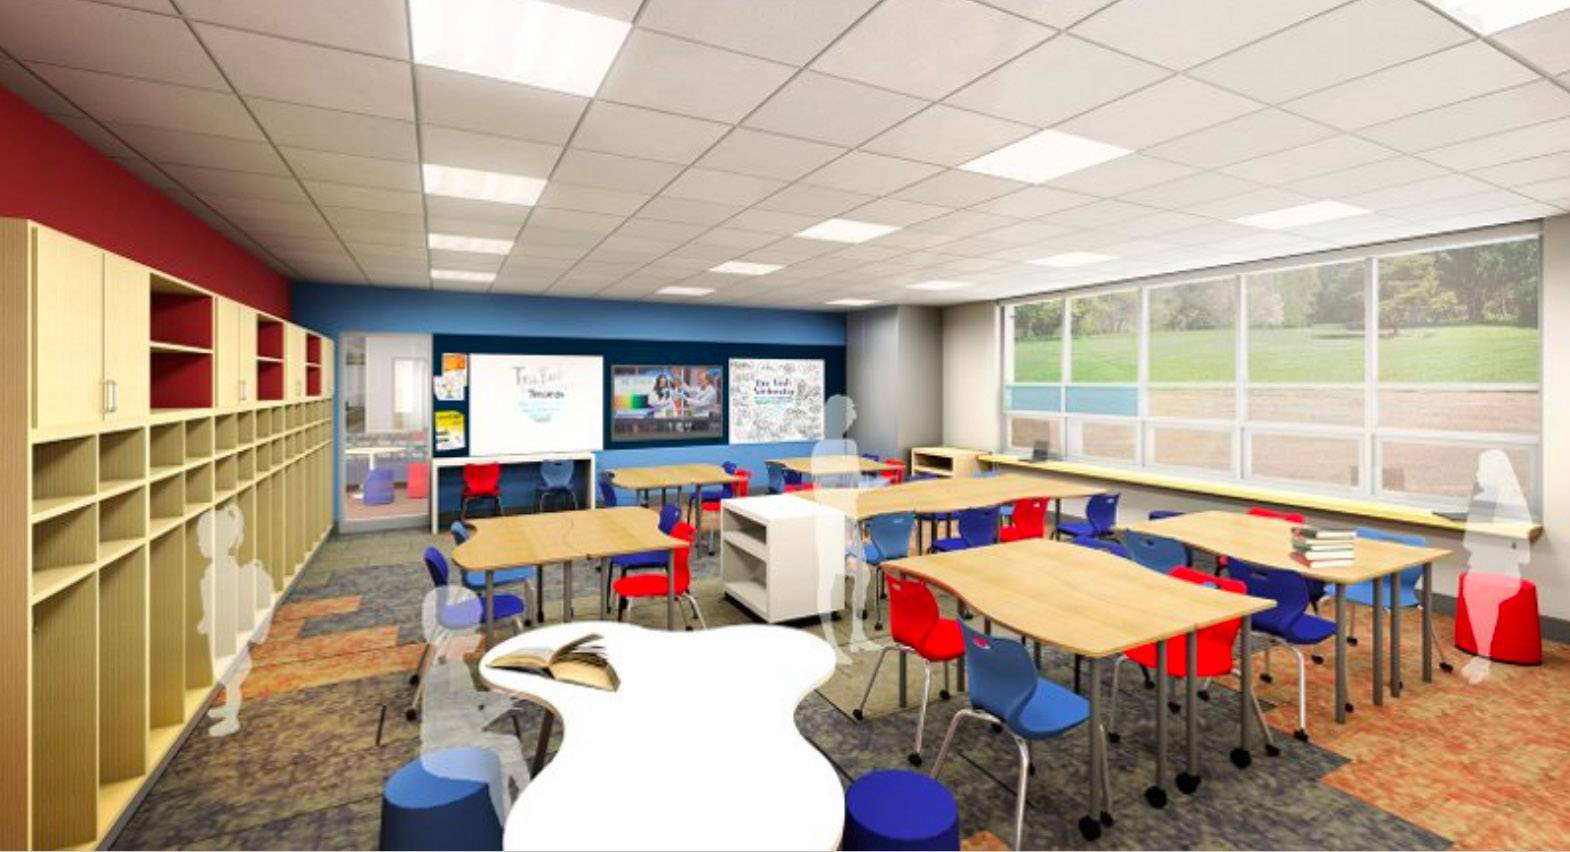 A rendering shows a planned classroom at Oakland Elementary School in Antioch Elementary District 34.